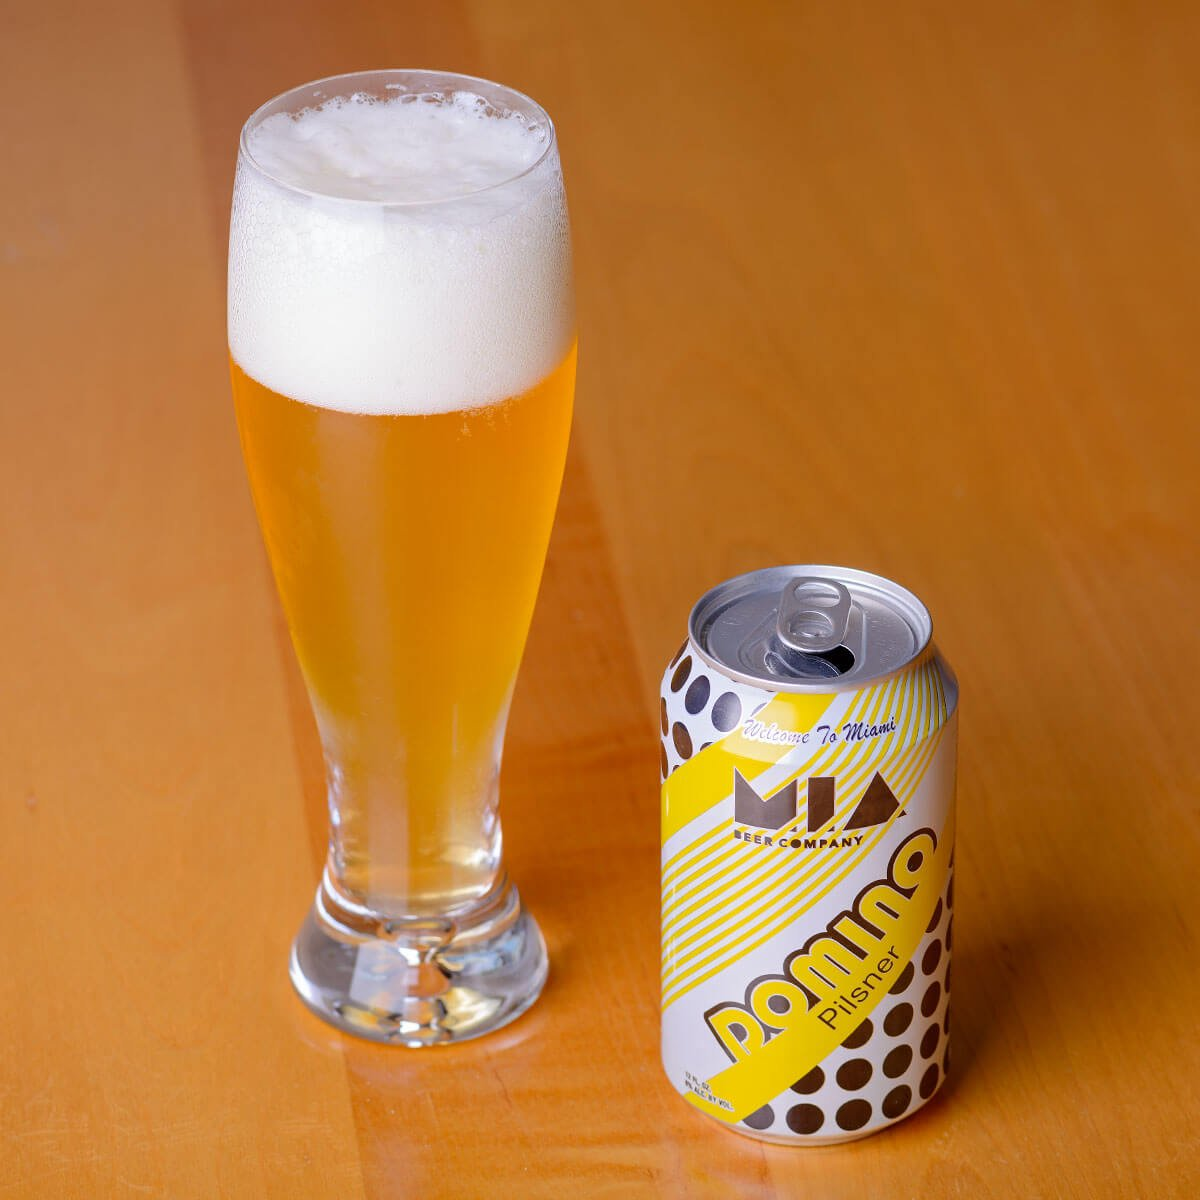 Domino, a German-style Pilsener brewed by MIA Beer Co.